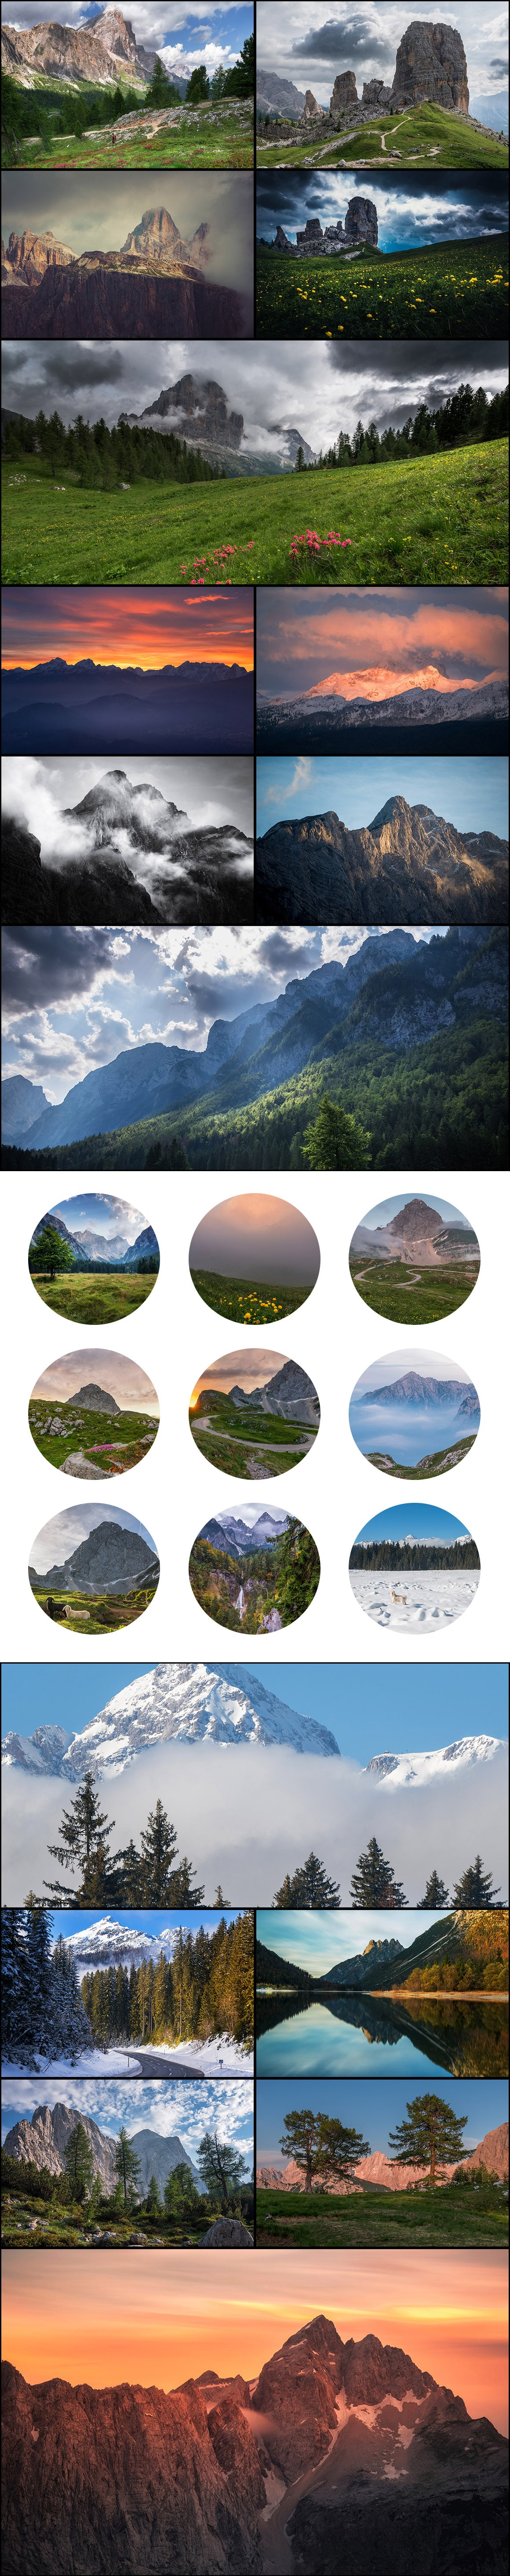 500+ Stock Images. Ultimate Photo Bundle  – $59 - PREVIEW mountains3